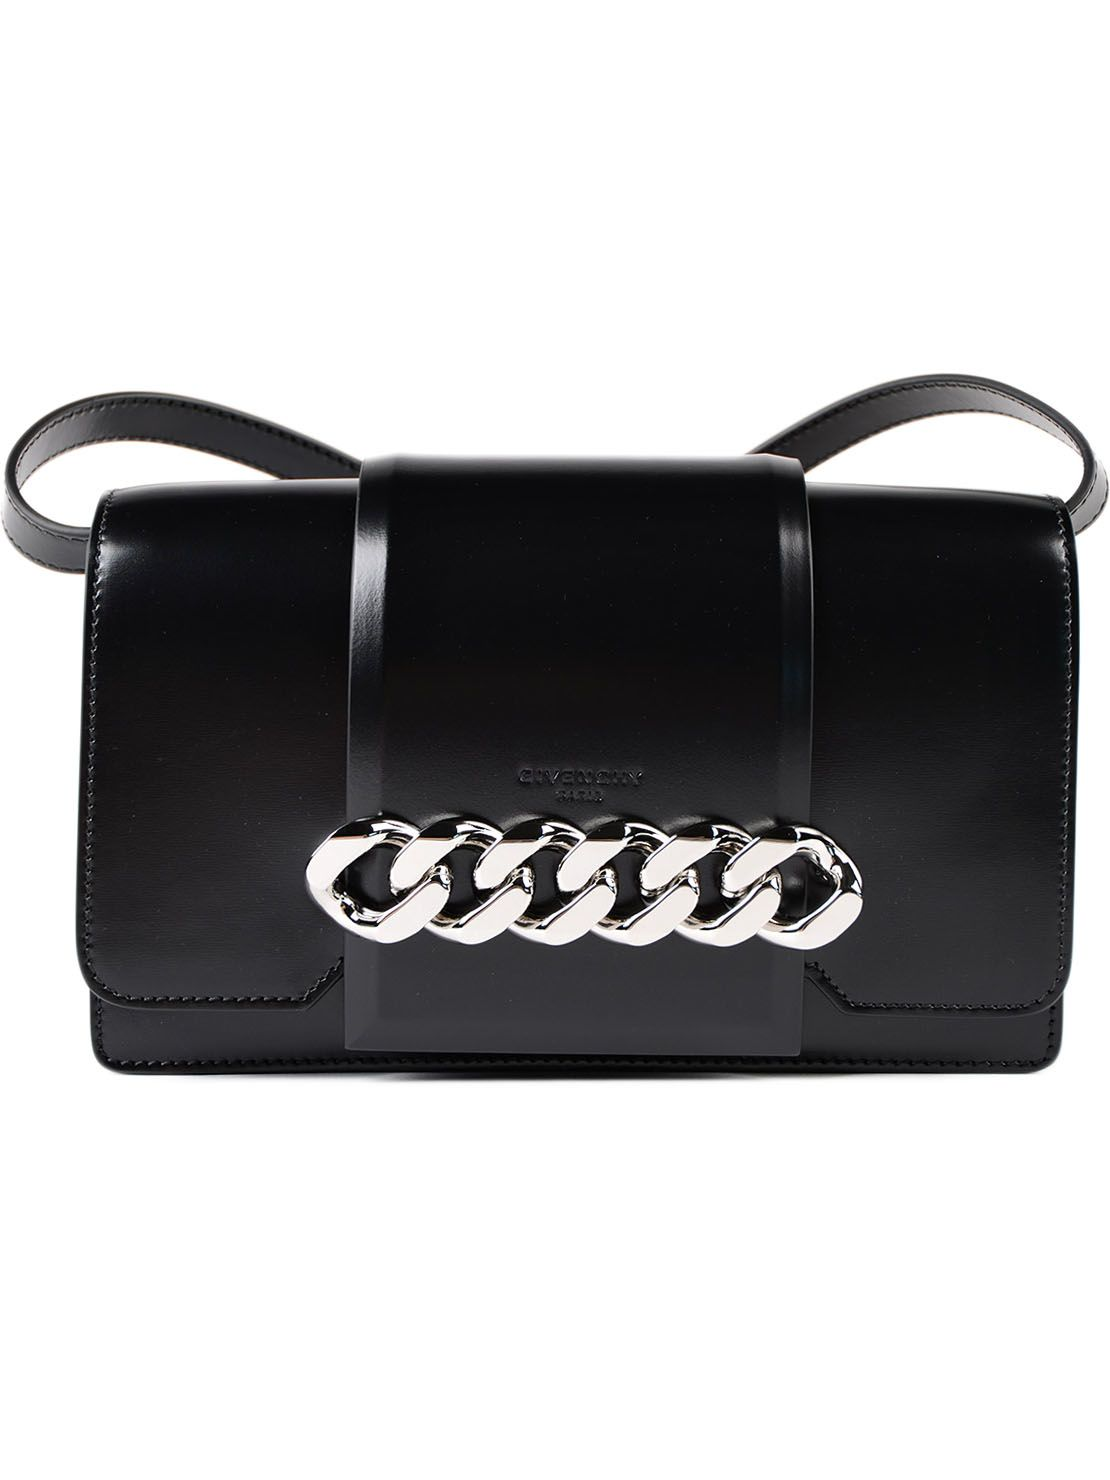 Givenchy Infinity Sm Flap Bag